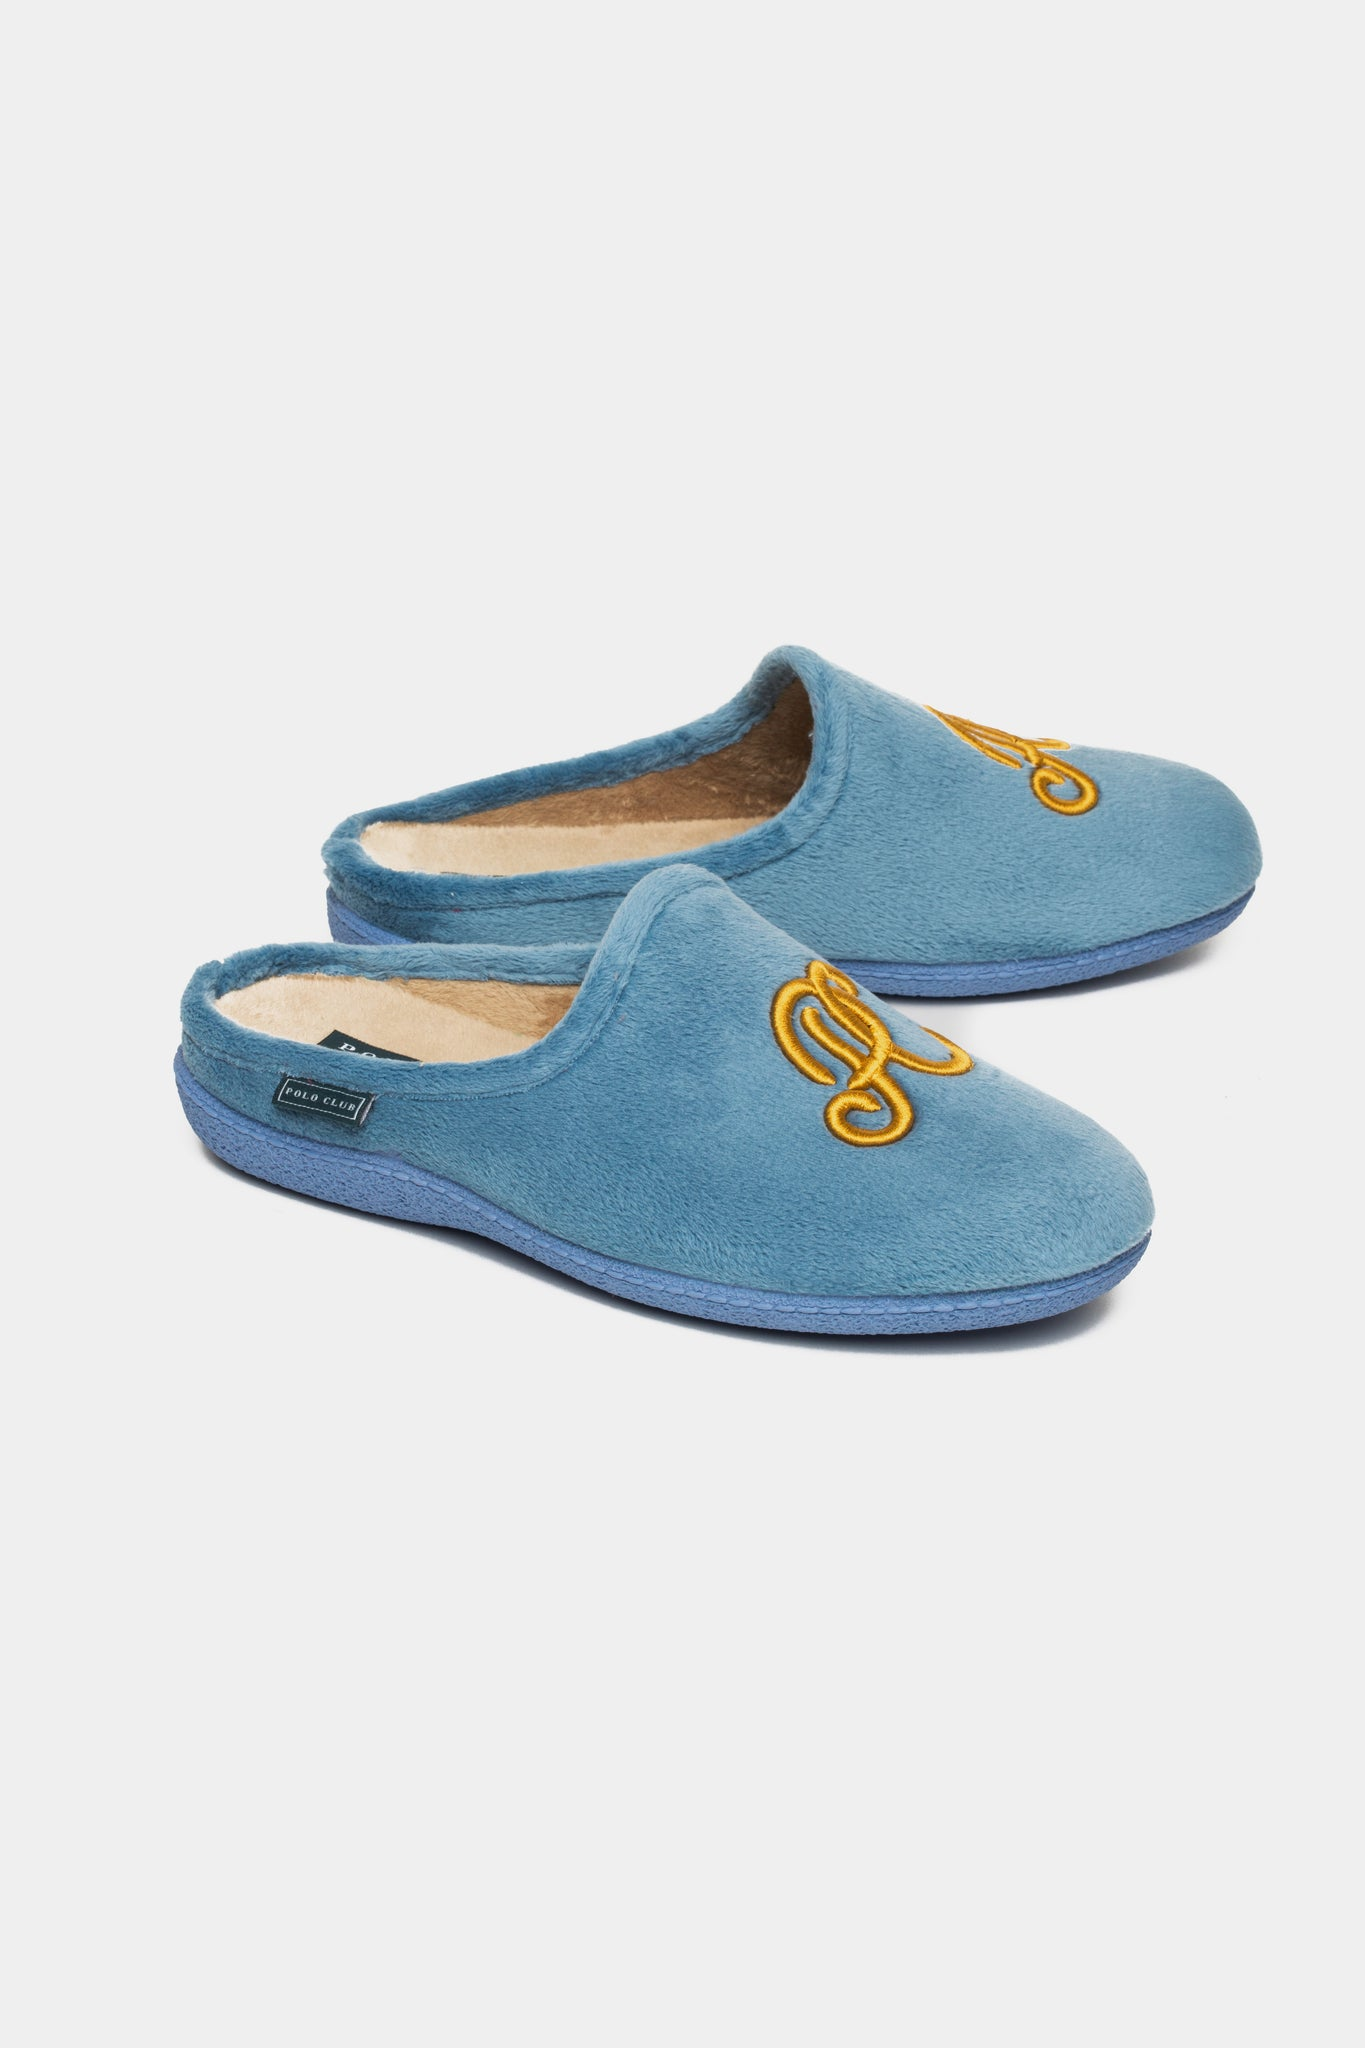 Zapatillas de casa MONOGRAM Azul Denim